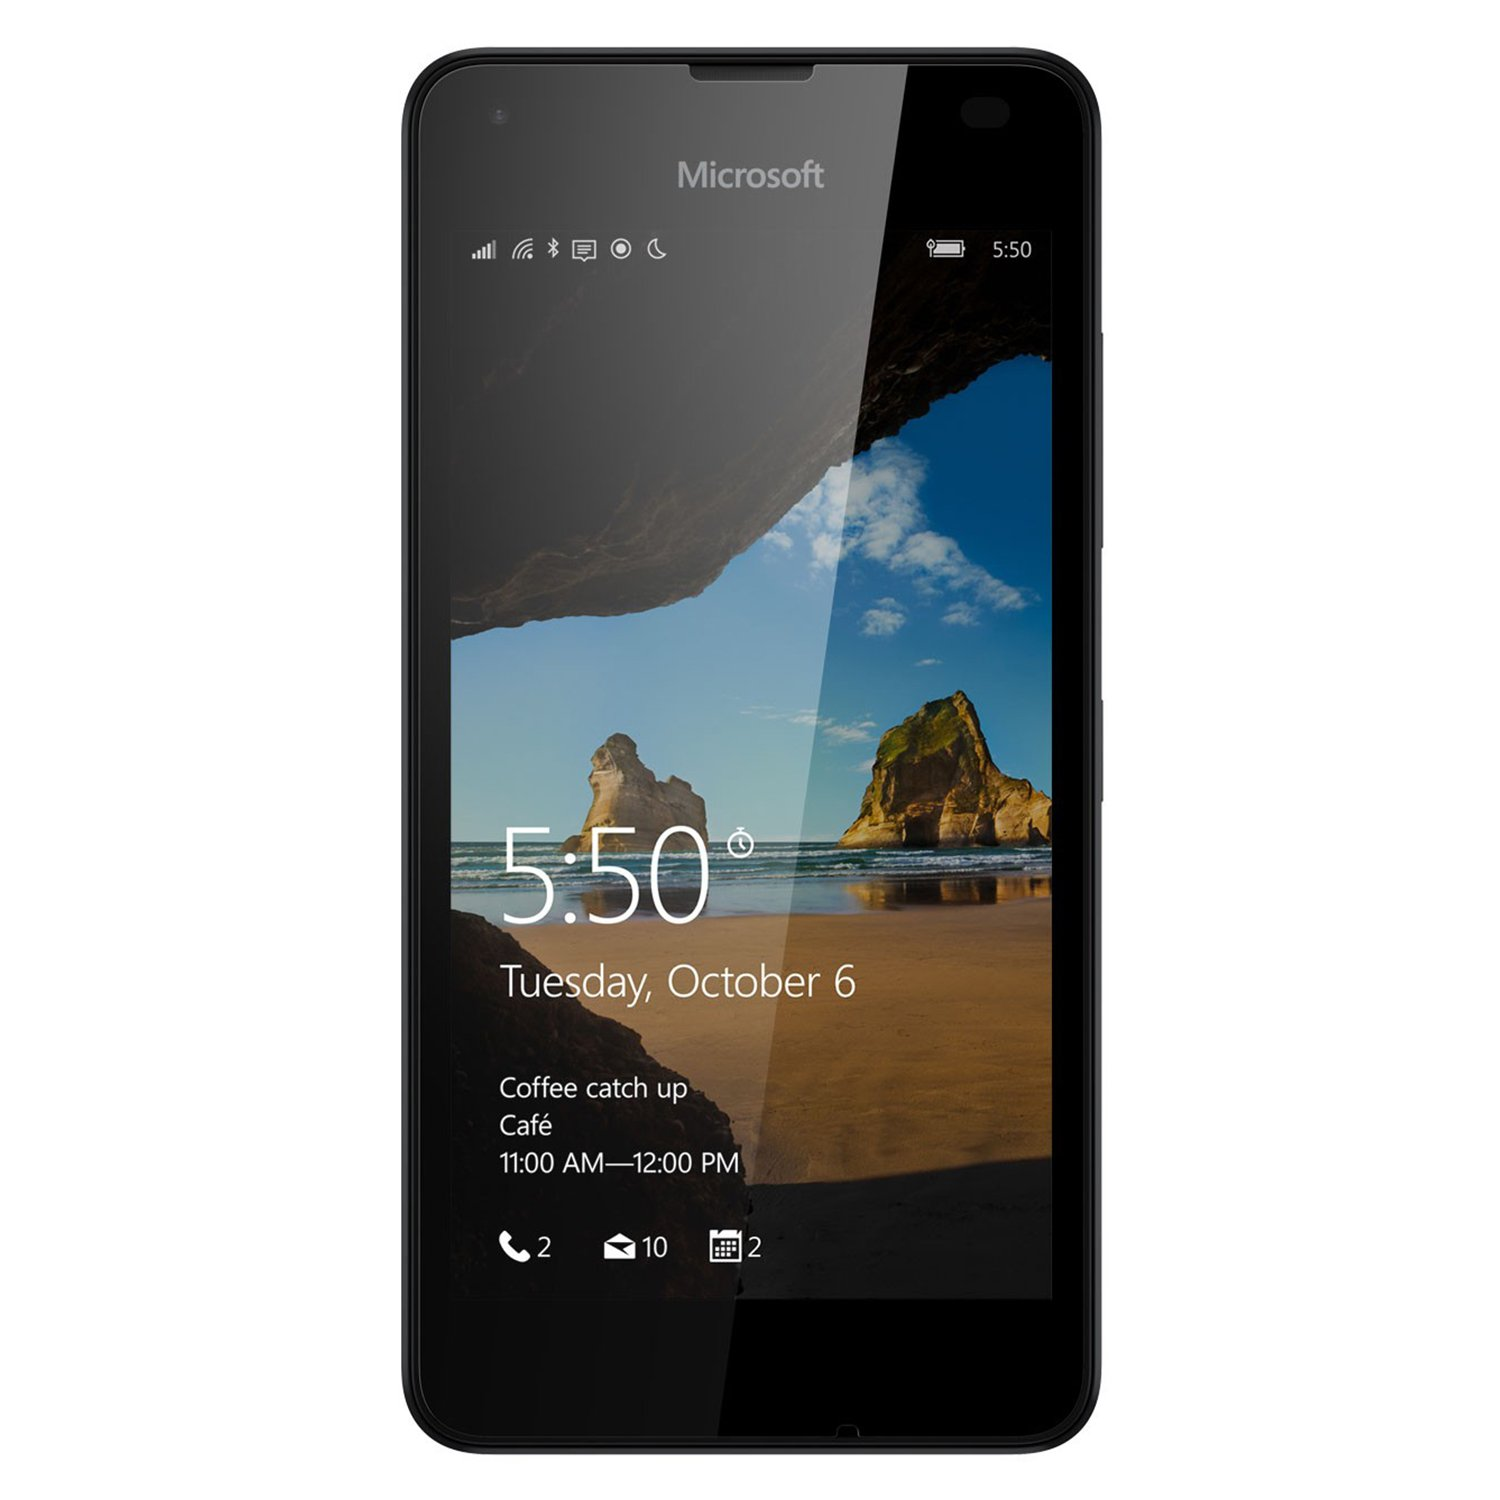 Phone Best Pay As You Go Android Phone amazon co uk pay as you go mobile phones smartphones vodafone microsoft lumia 550 payg phone black